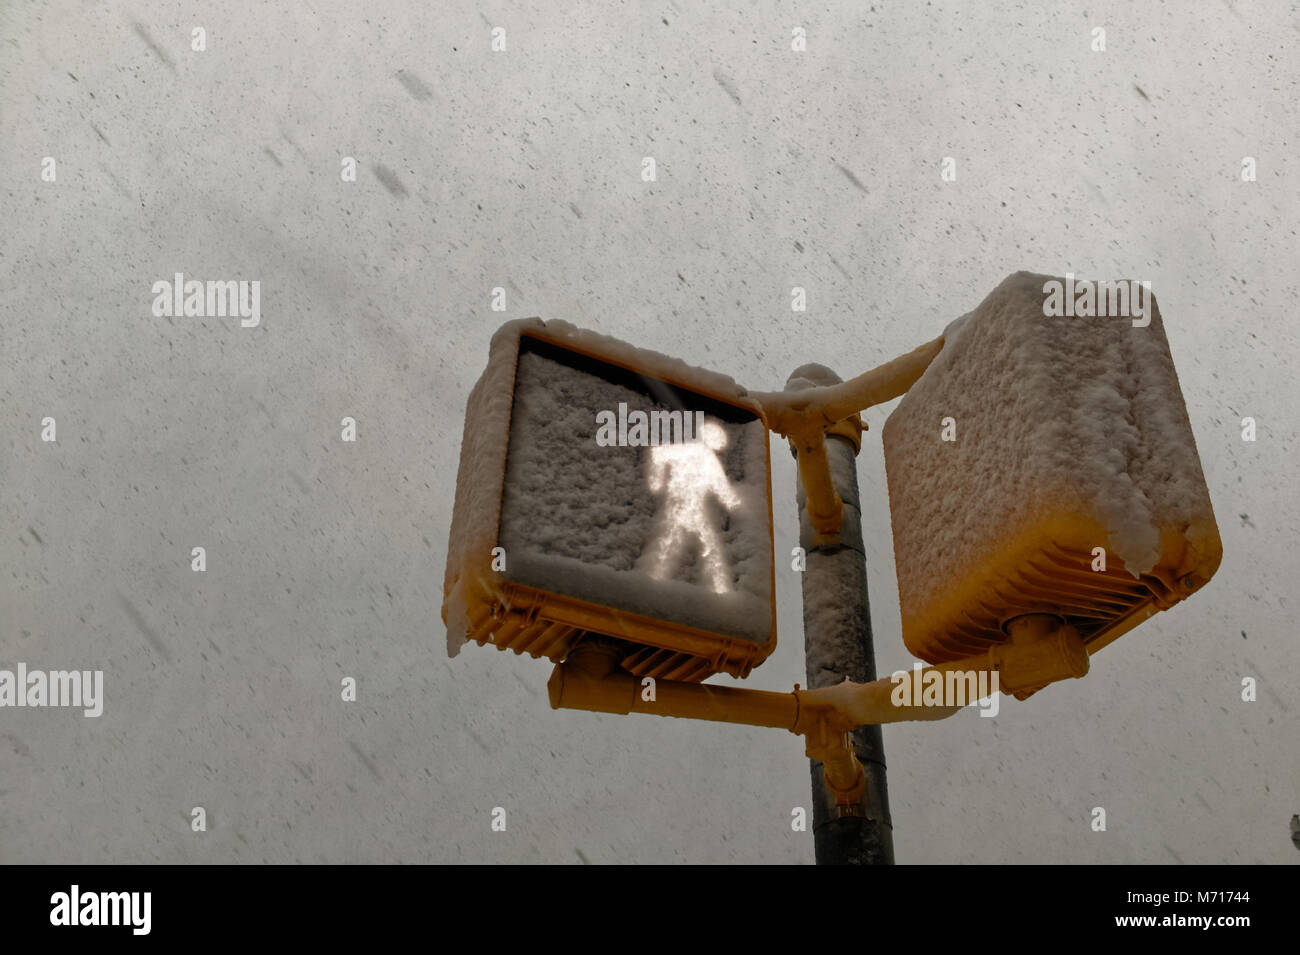 Brooklyn, USA. 7th March, 2018. Crossing signal covered in snow during the Nor'easter of March 7th, 2018 in - Stock Image